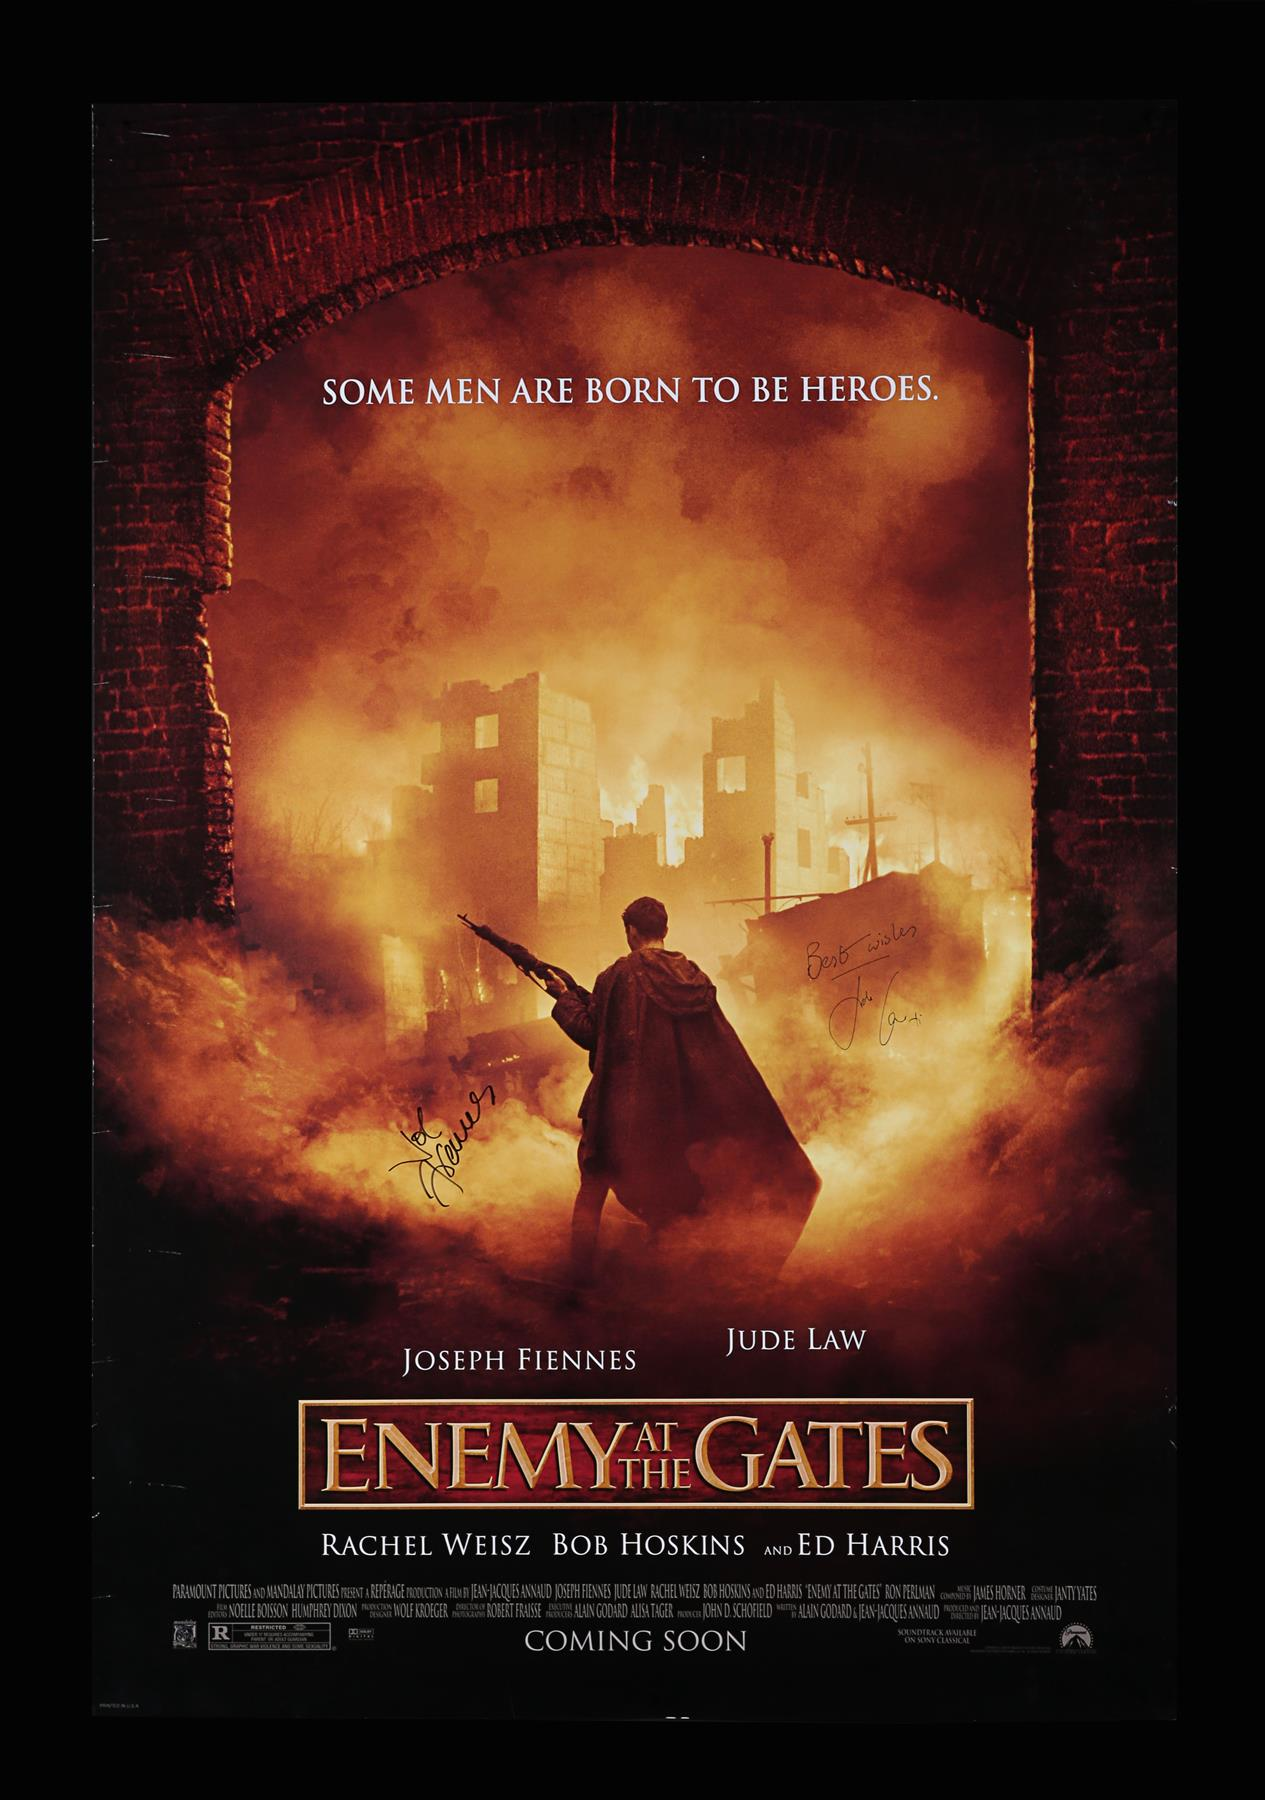 ENEMY AT THE GATES (2001) - US One-Sheet, 2001, Autographed by Jude Law and Joseph Fiennes